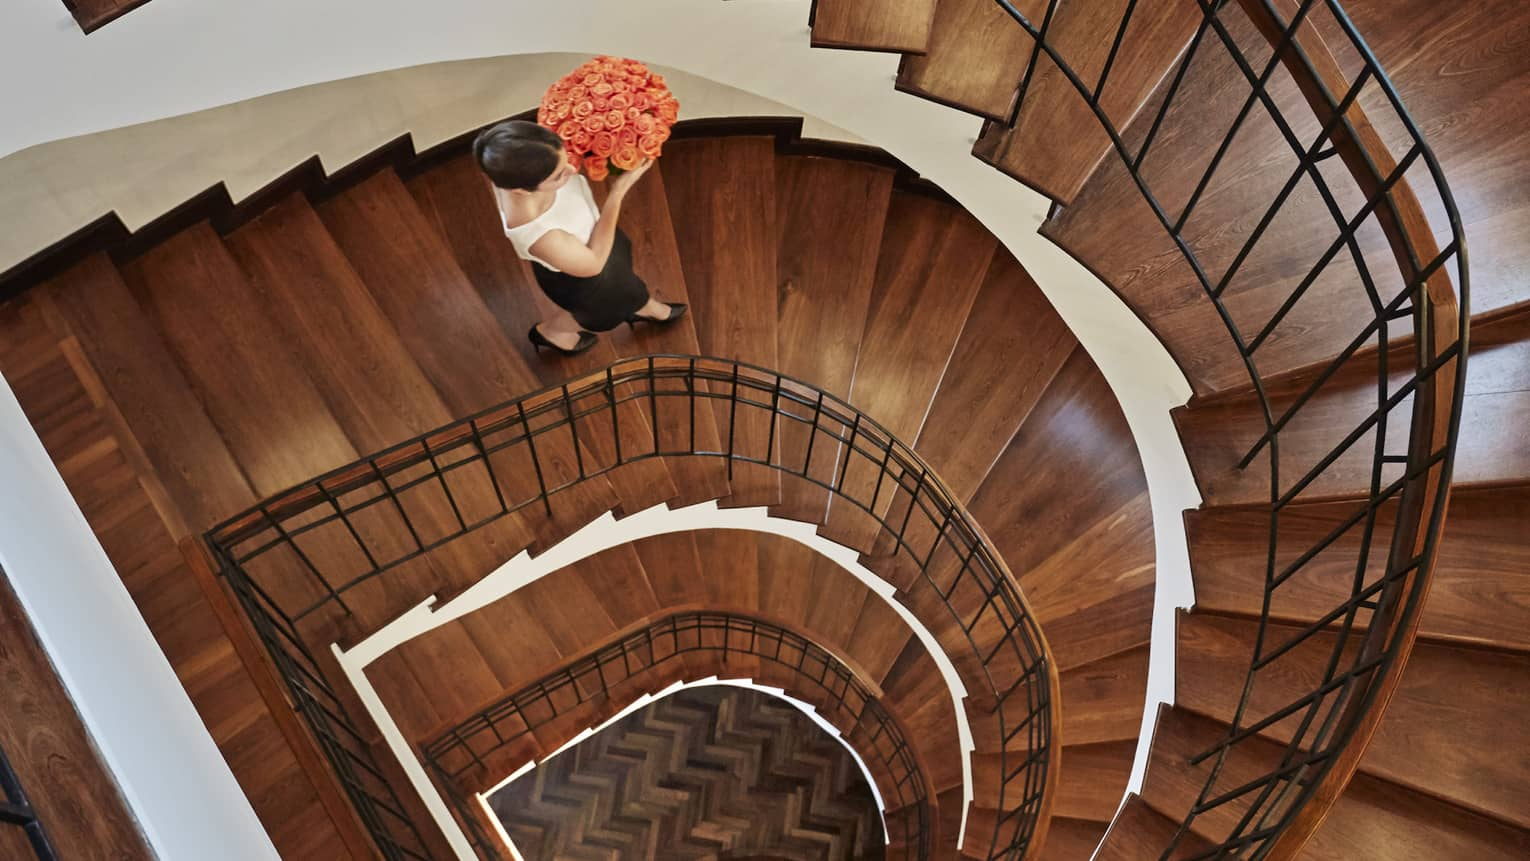 Aerial view of woman holding pink rose flower arrangement walking down wood spiral staircase